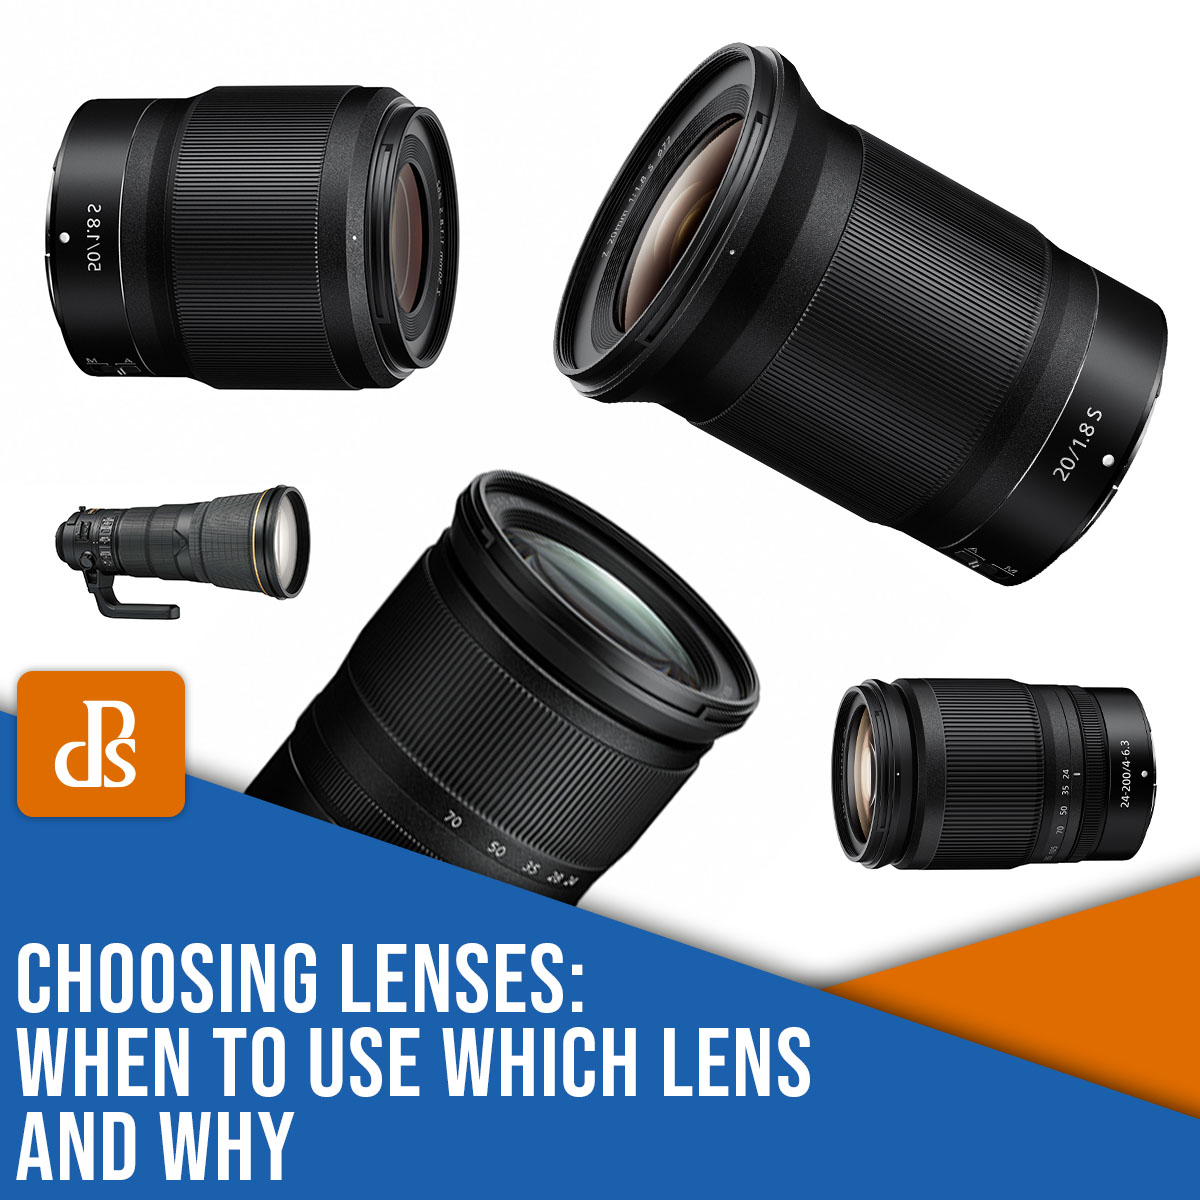 what lens to use and why?